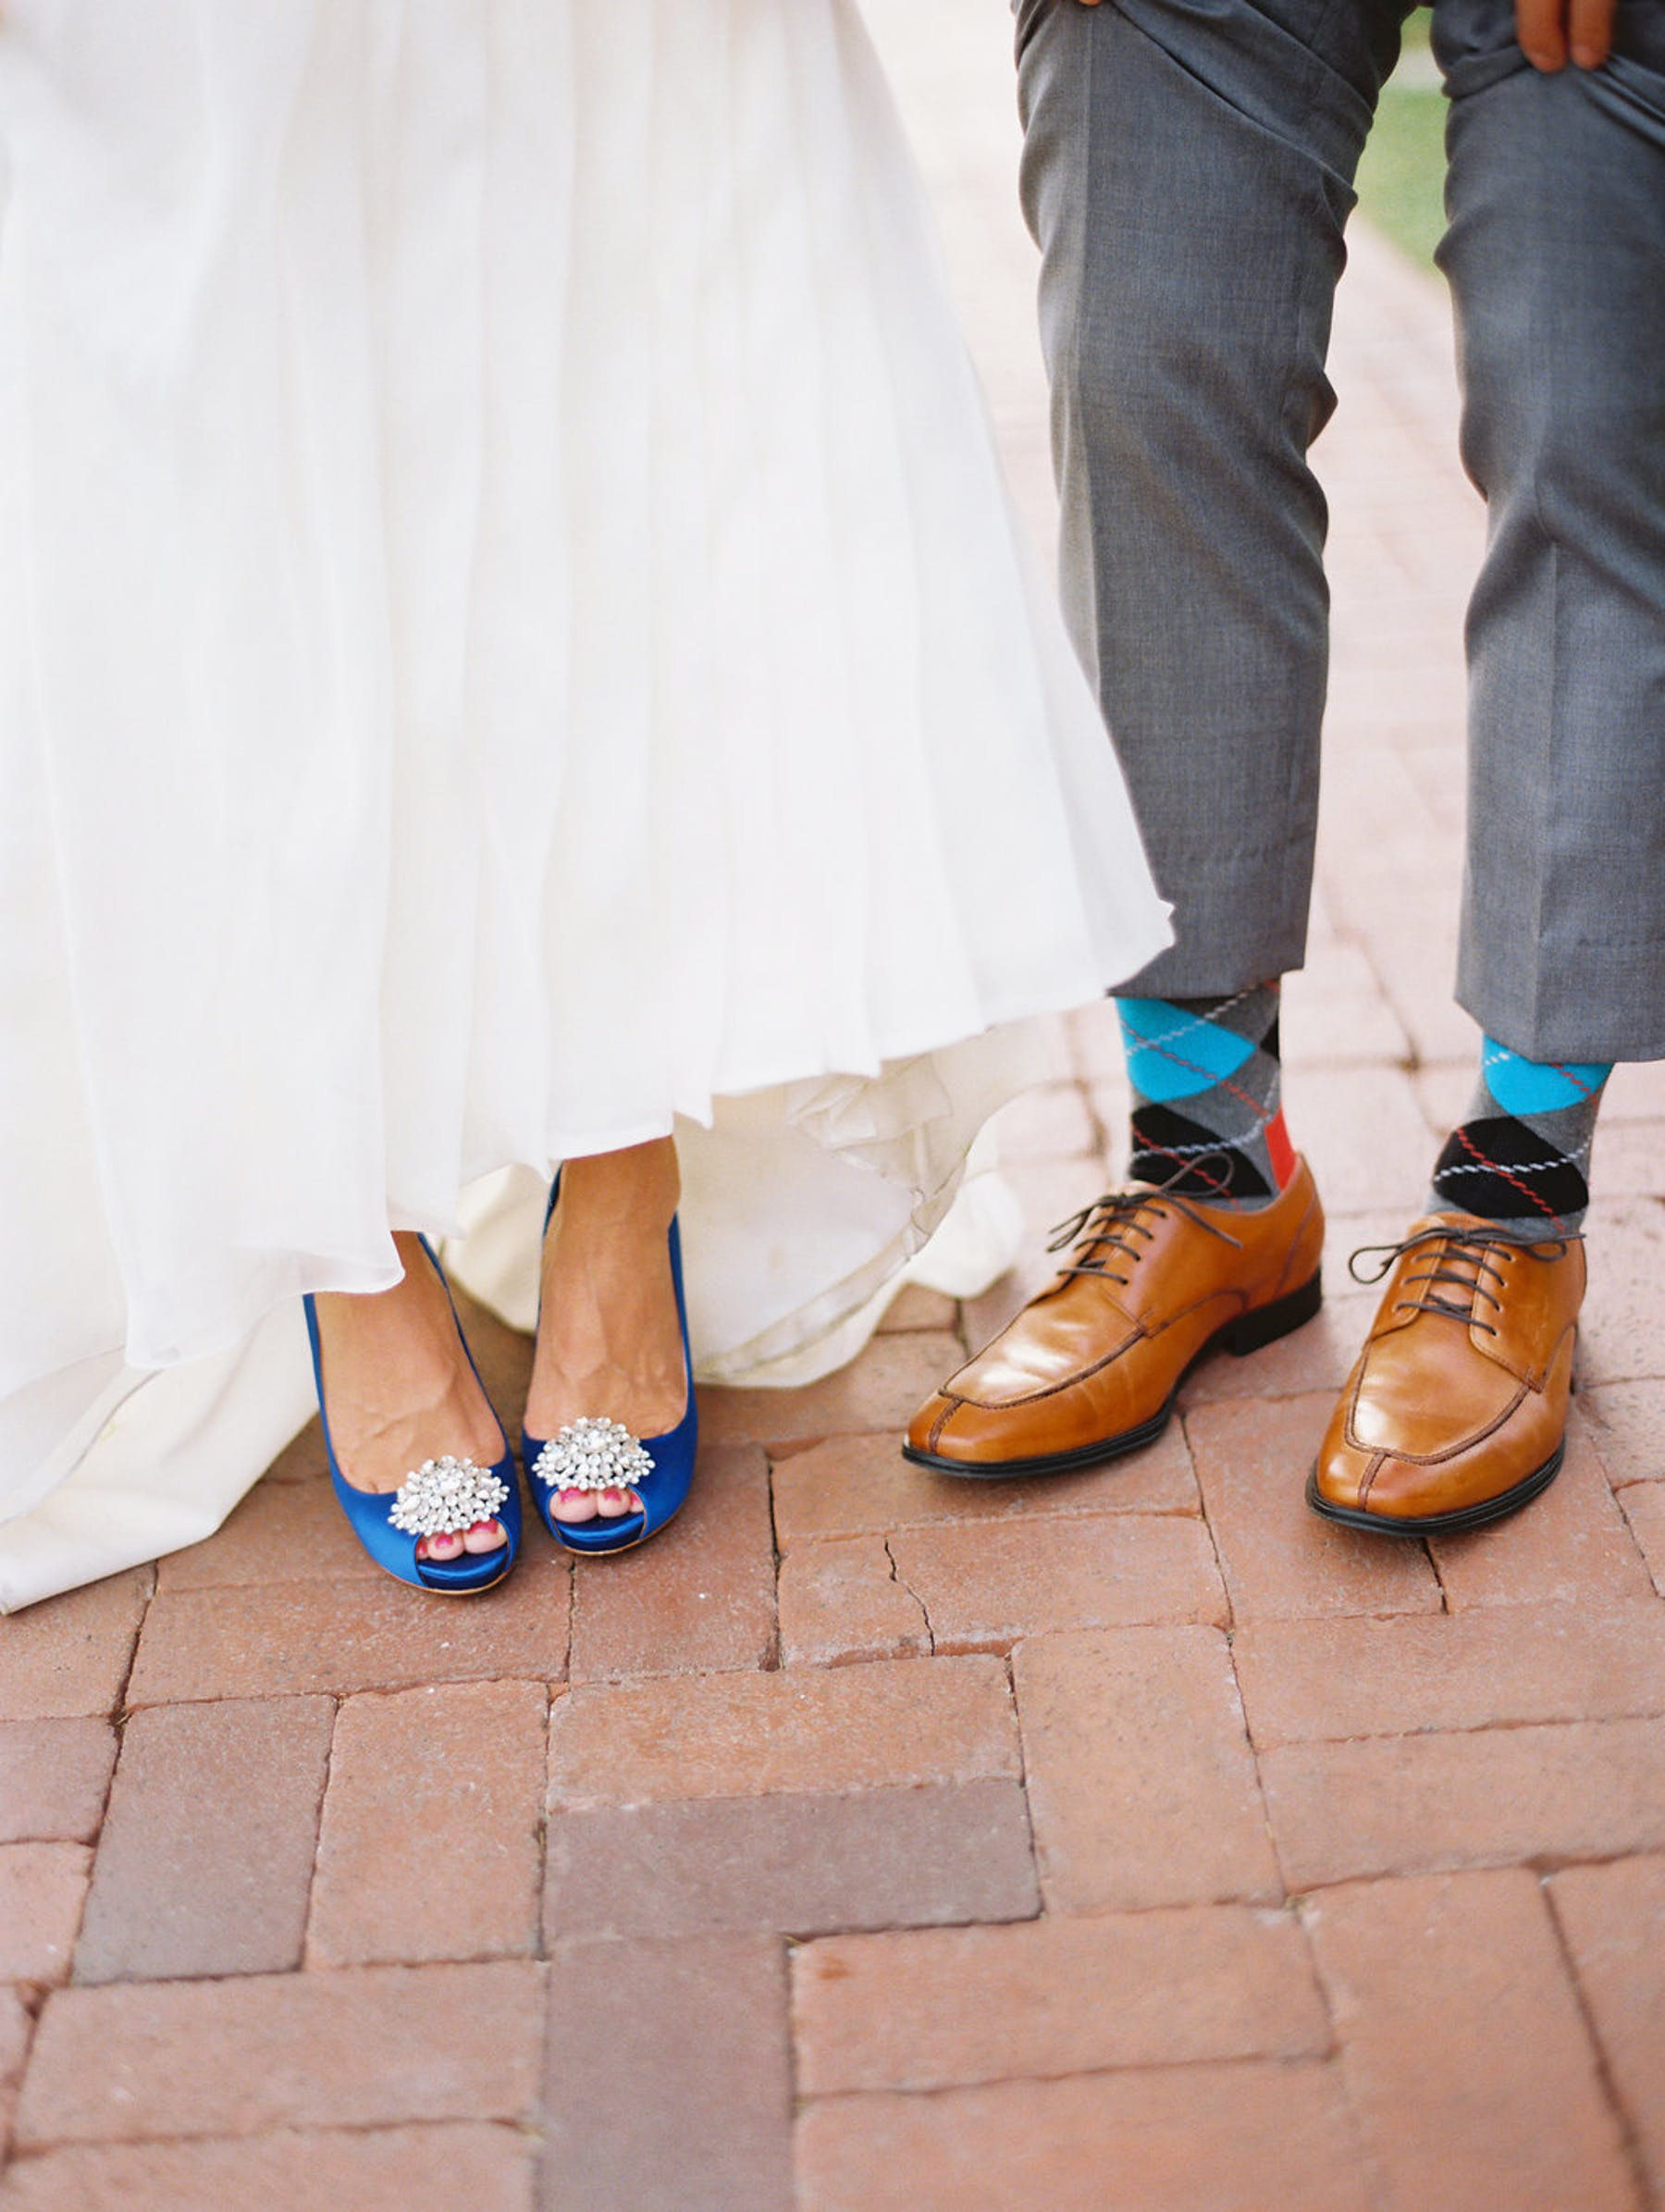 www.santabarbarawedding.com | El Encanto | Coco Rose Design | This Modern Romance | Bride and Groom's Shoes